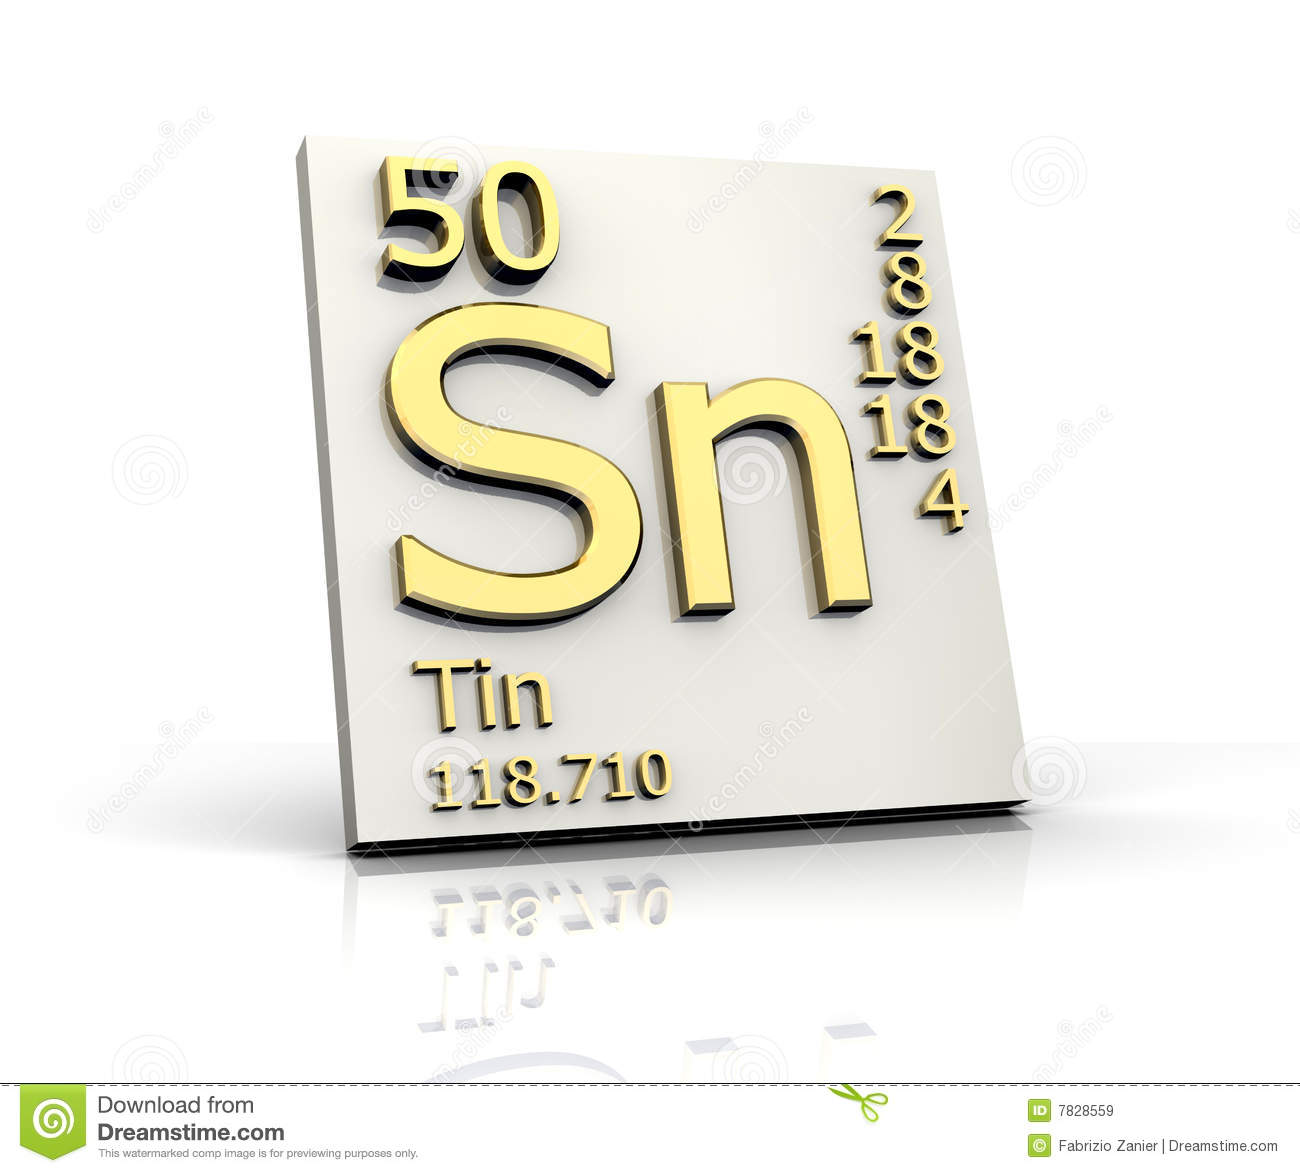 Tin form periodic table of elements stock illustration tin form periodic table of elements urtaz Image collections